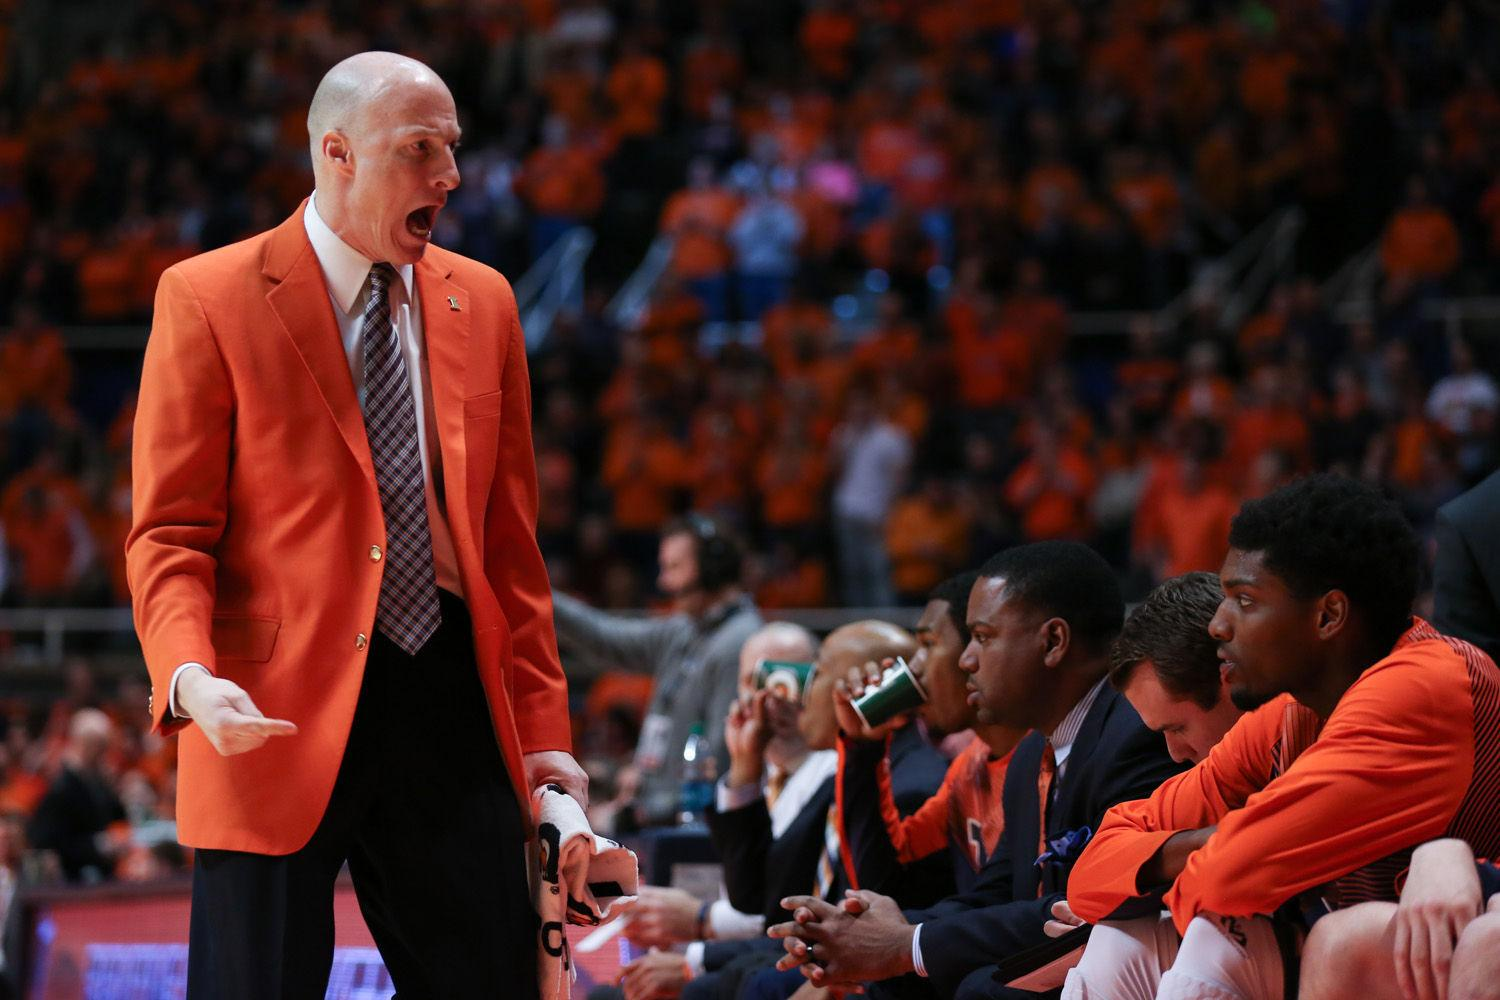 Illinois+heads+to+Purdue+on+Saturday%26nbsp%3Bto+face+the+Boilermakers+in+what+has+become+a+virtual+NCAA+tournament+play-in+game%2C+with+potentially+historic+implications+for+the+Illini.